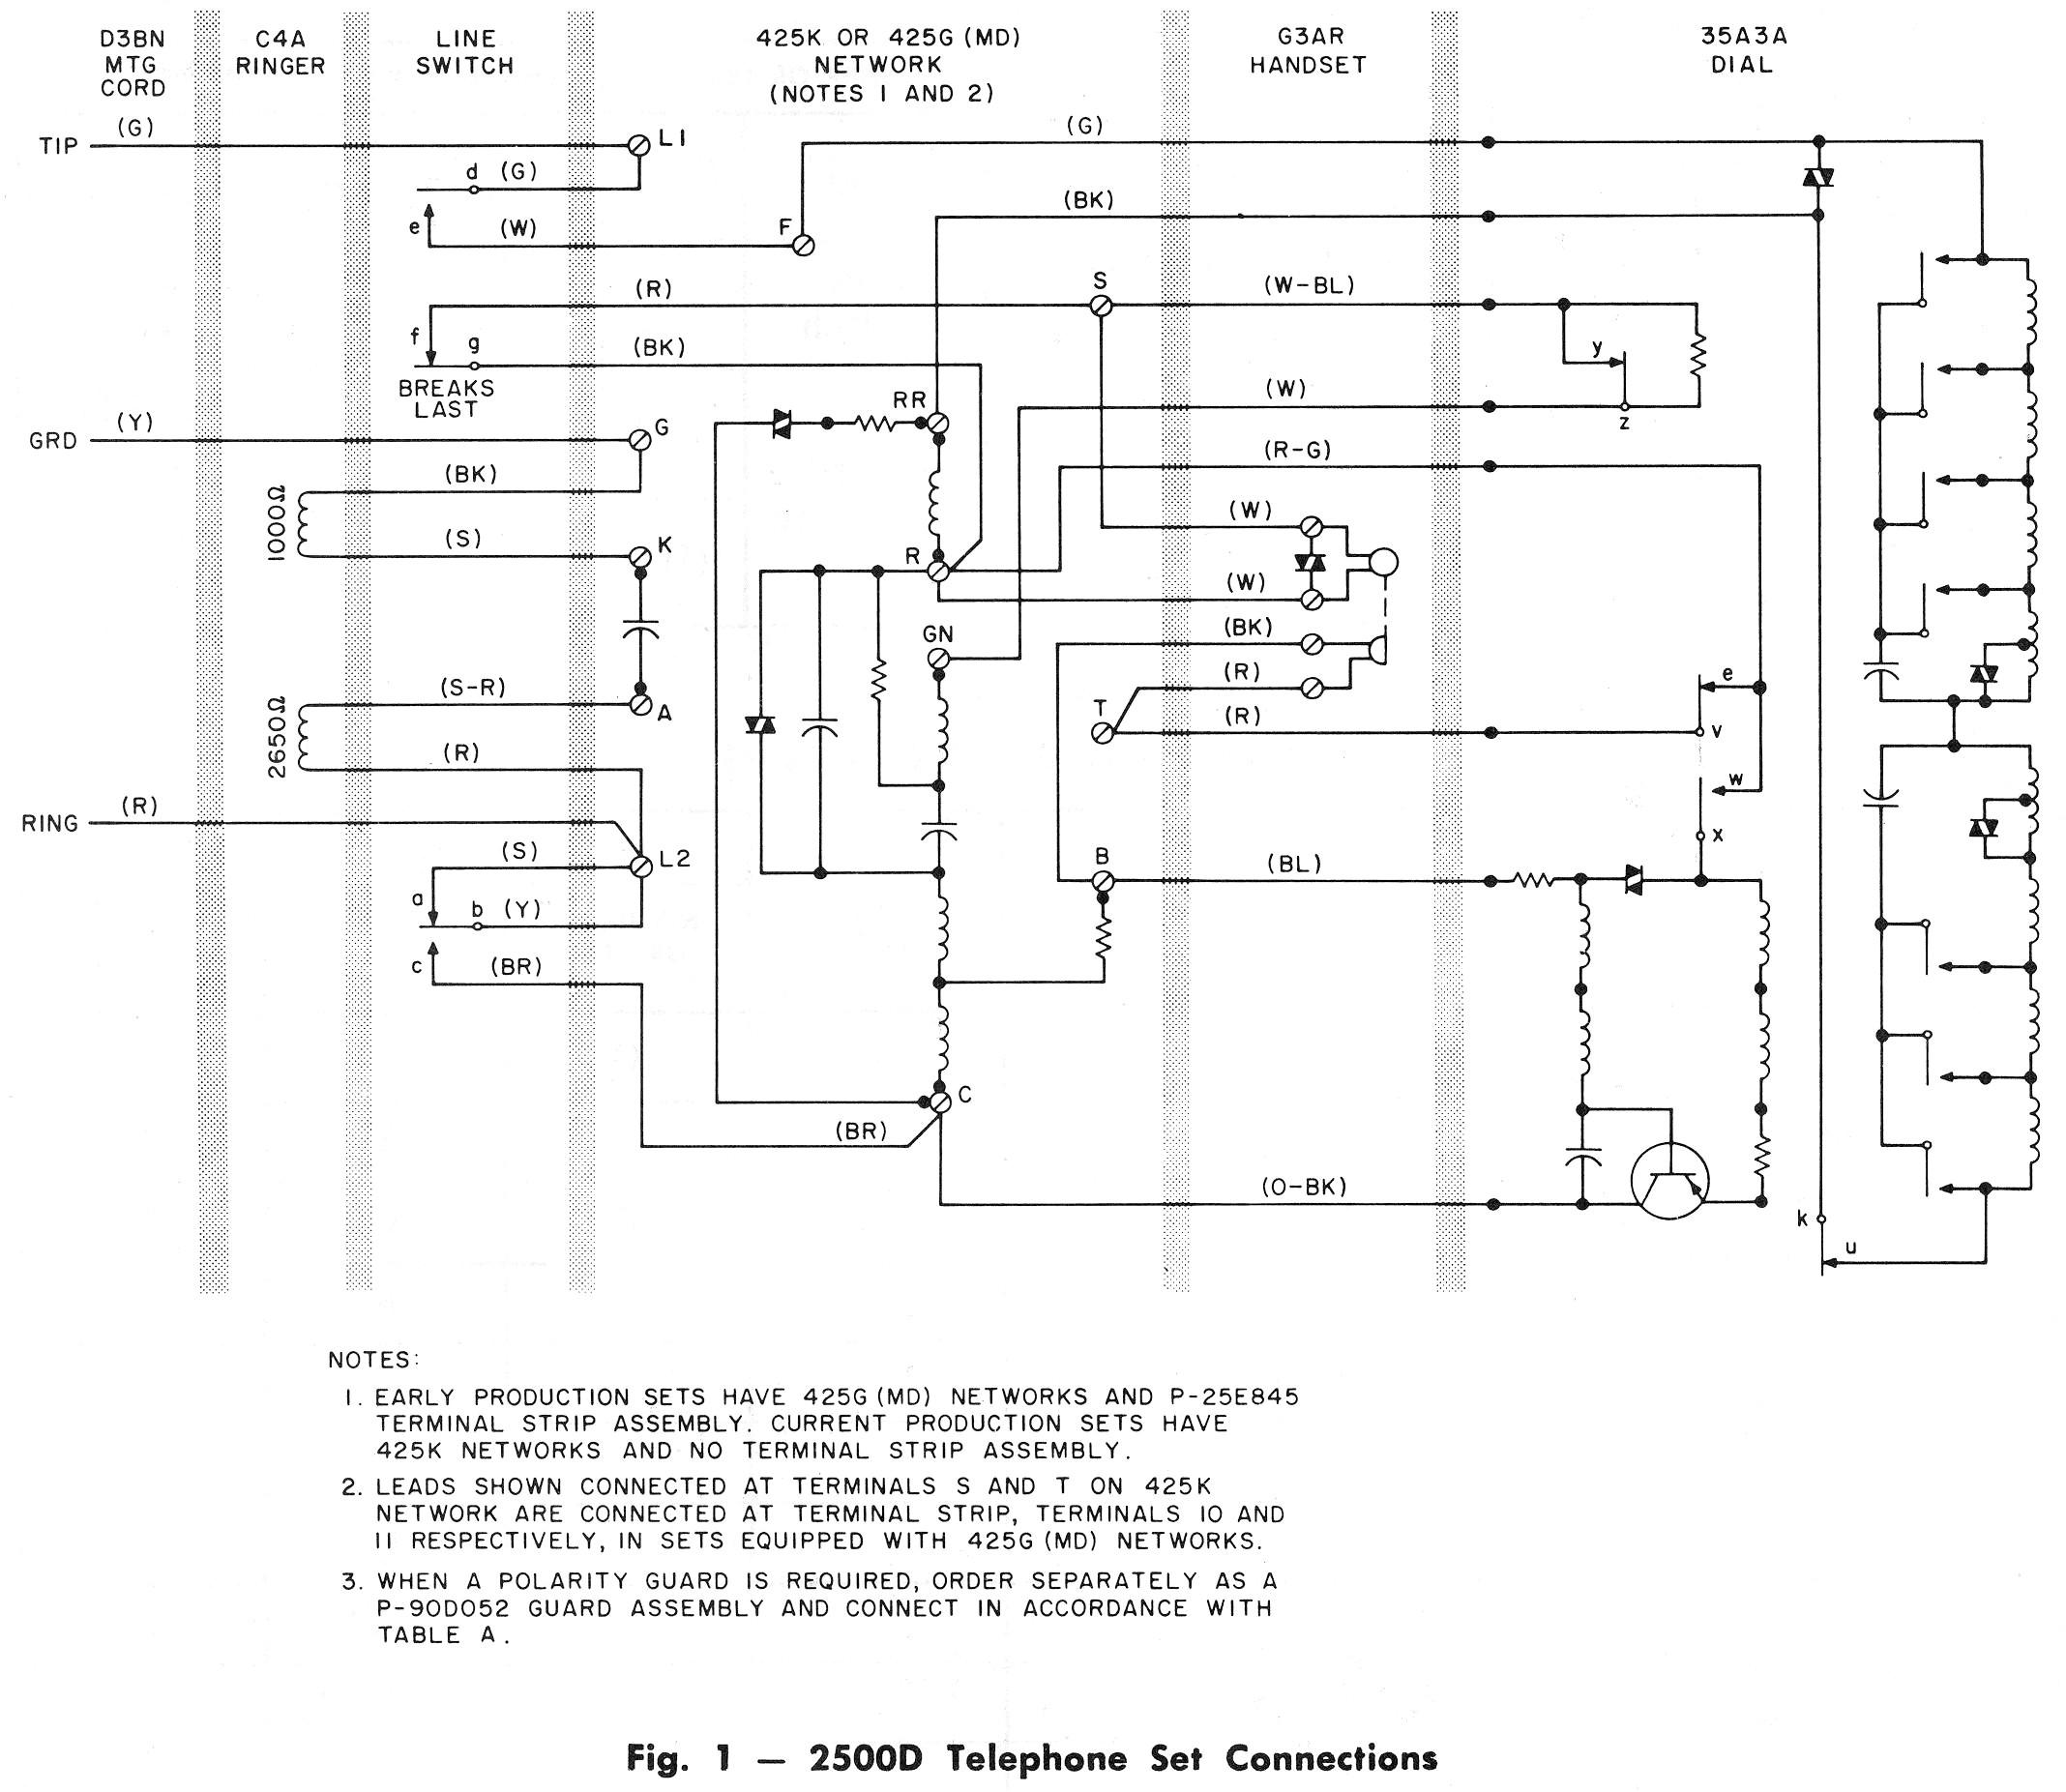 bell telephone dtmf dial and phone schematics